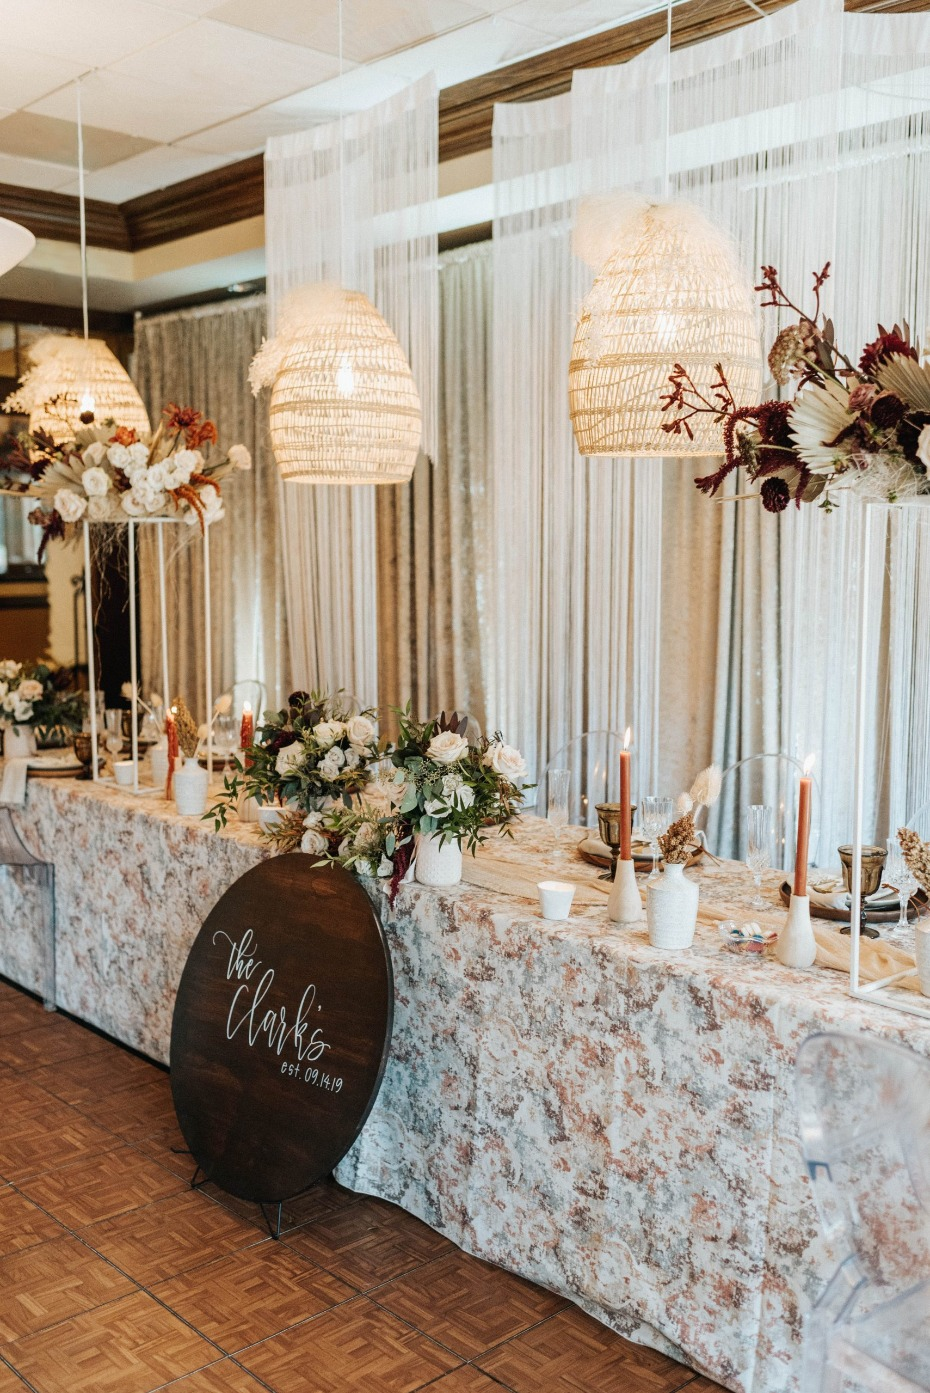 Boho chic wedding reception decor ideas